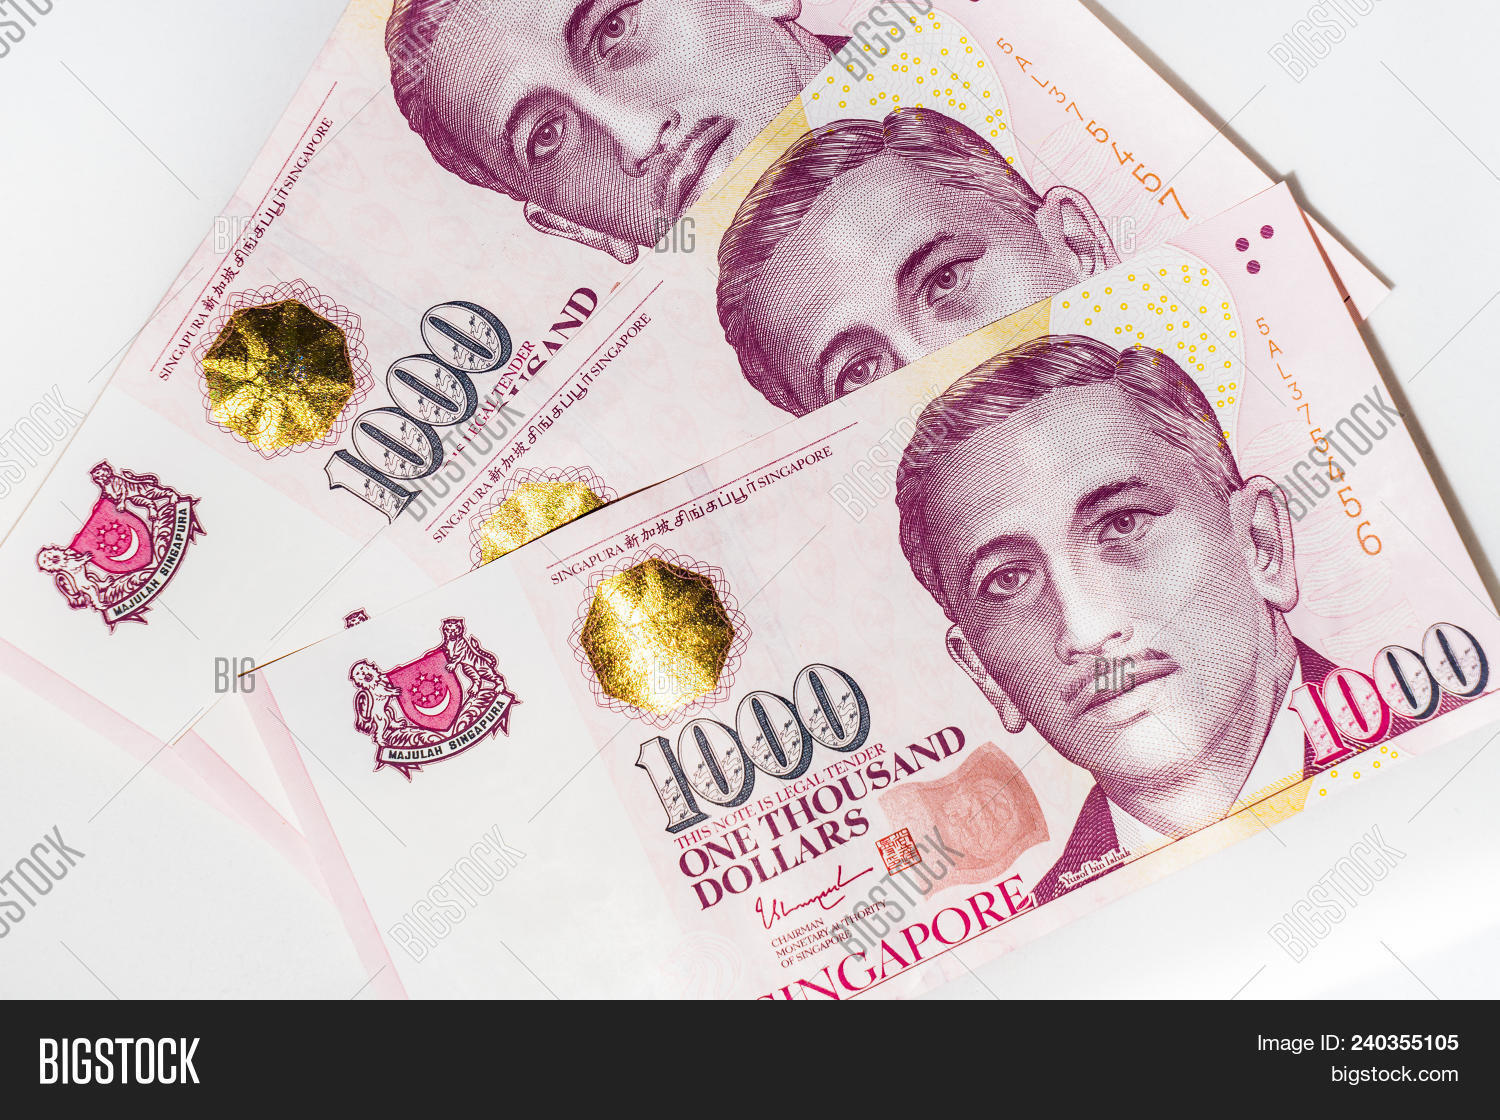 Singapore Dollar Image & Photo (Free Trial) | Bigstock